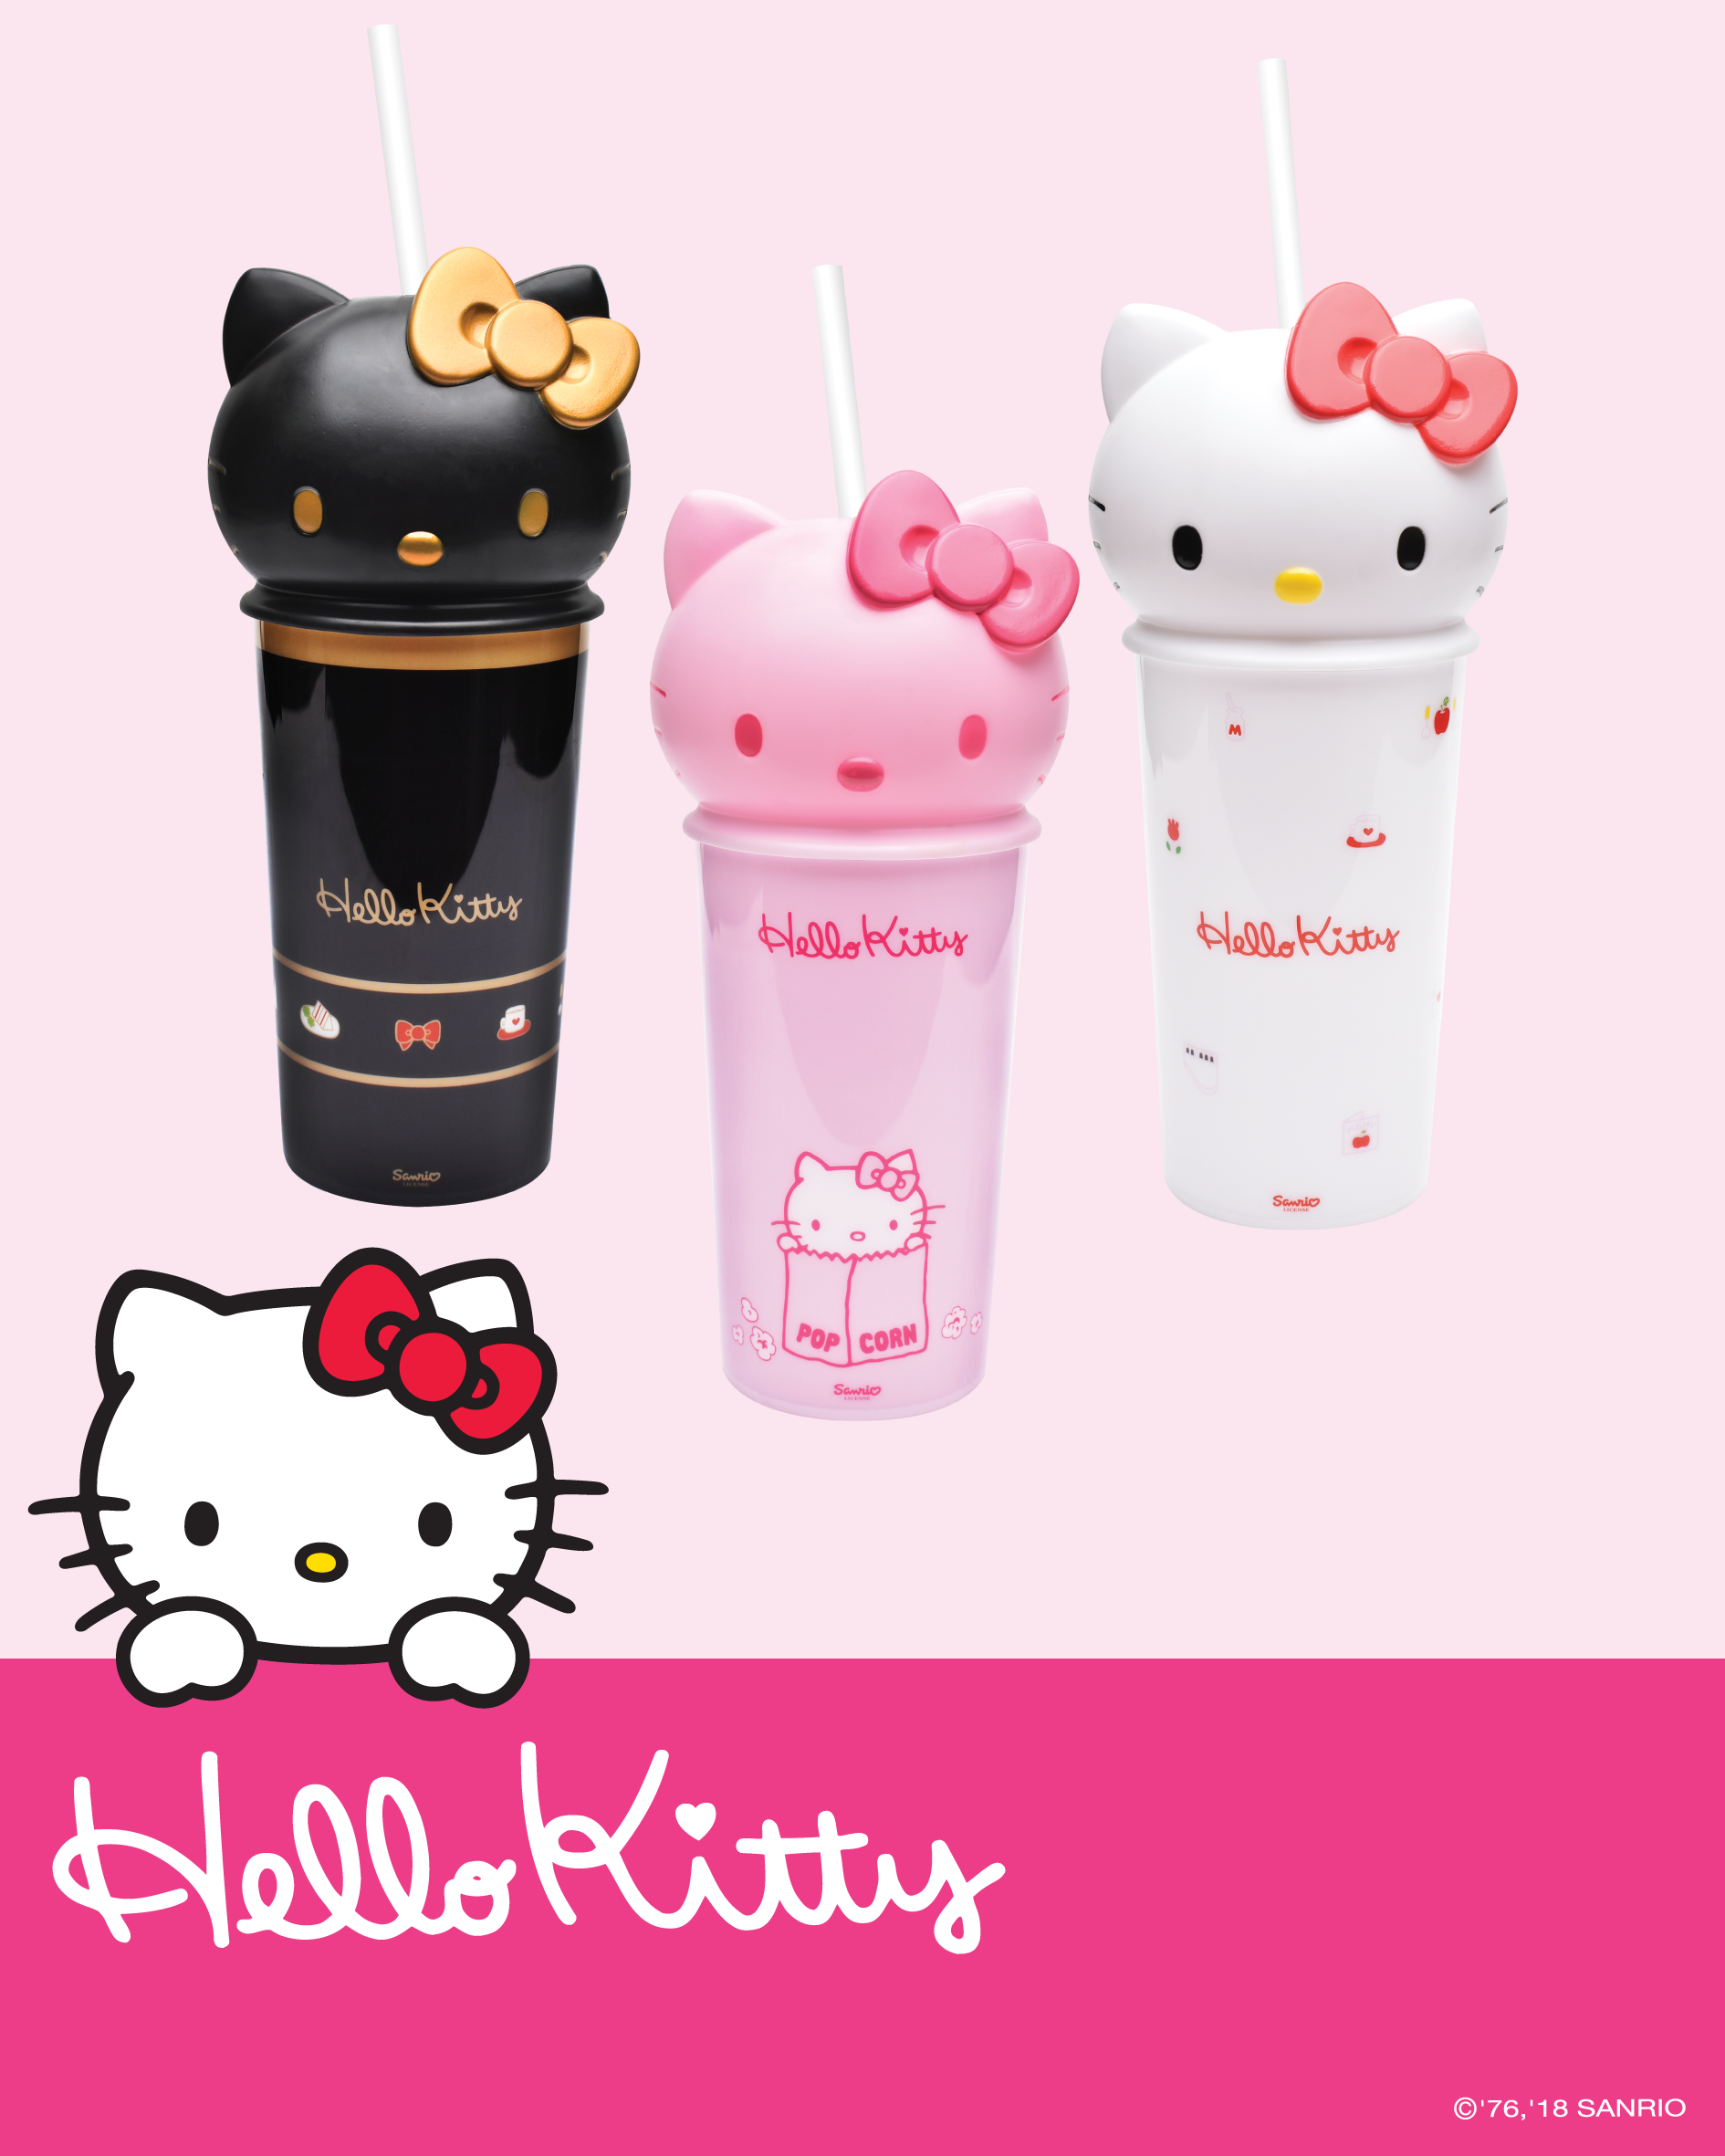 'Hello Kitty, 2018' - TOY CUP - CGV